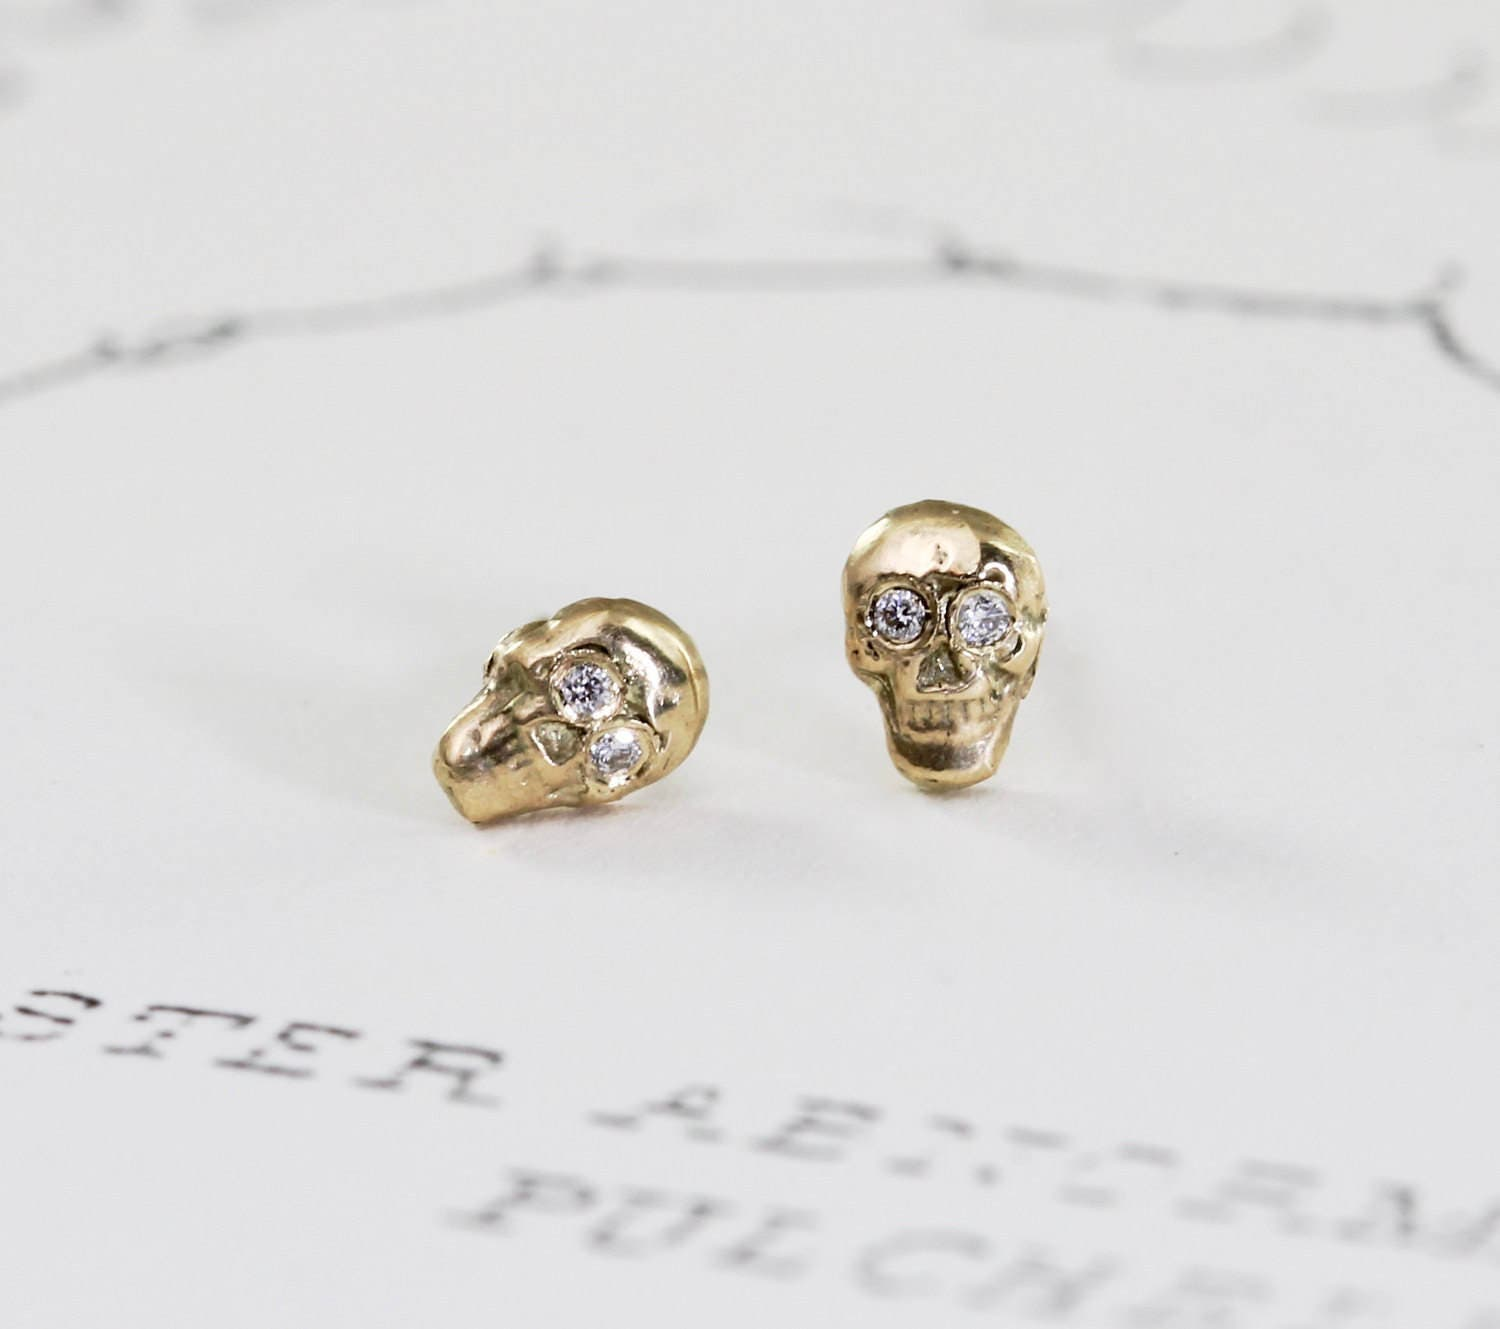 Gold Skull Stud Earrings with Diamond Eyes 14k Gold Small